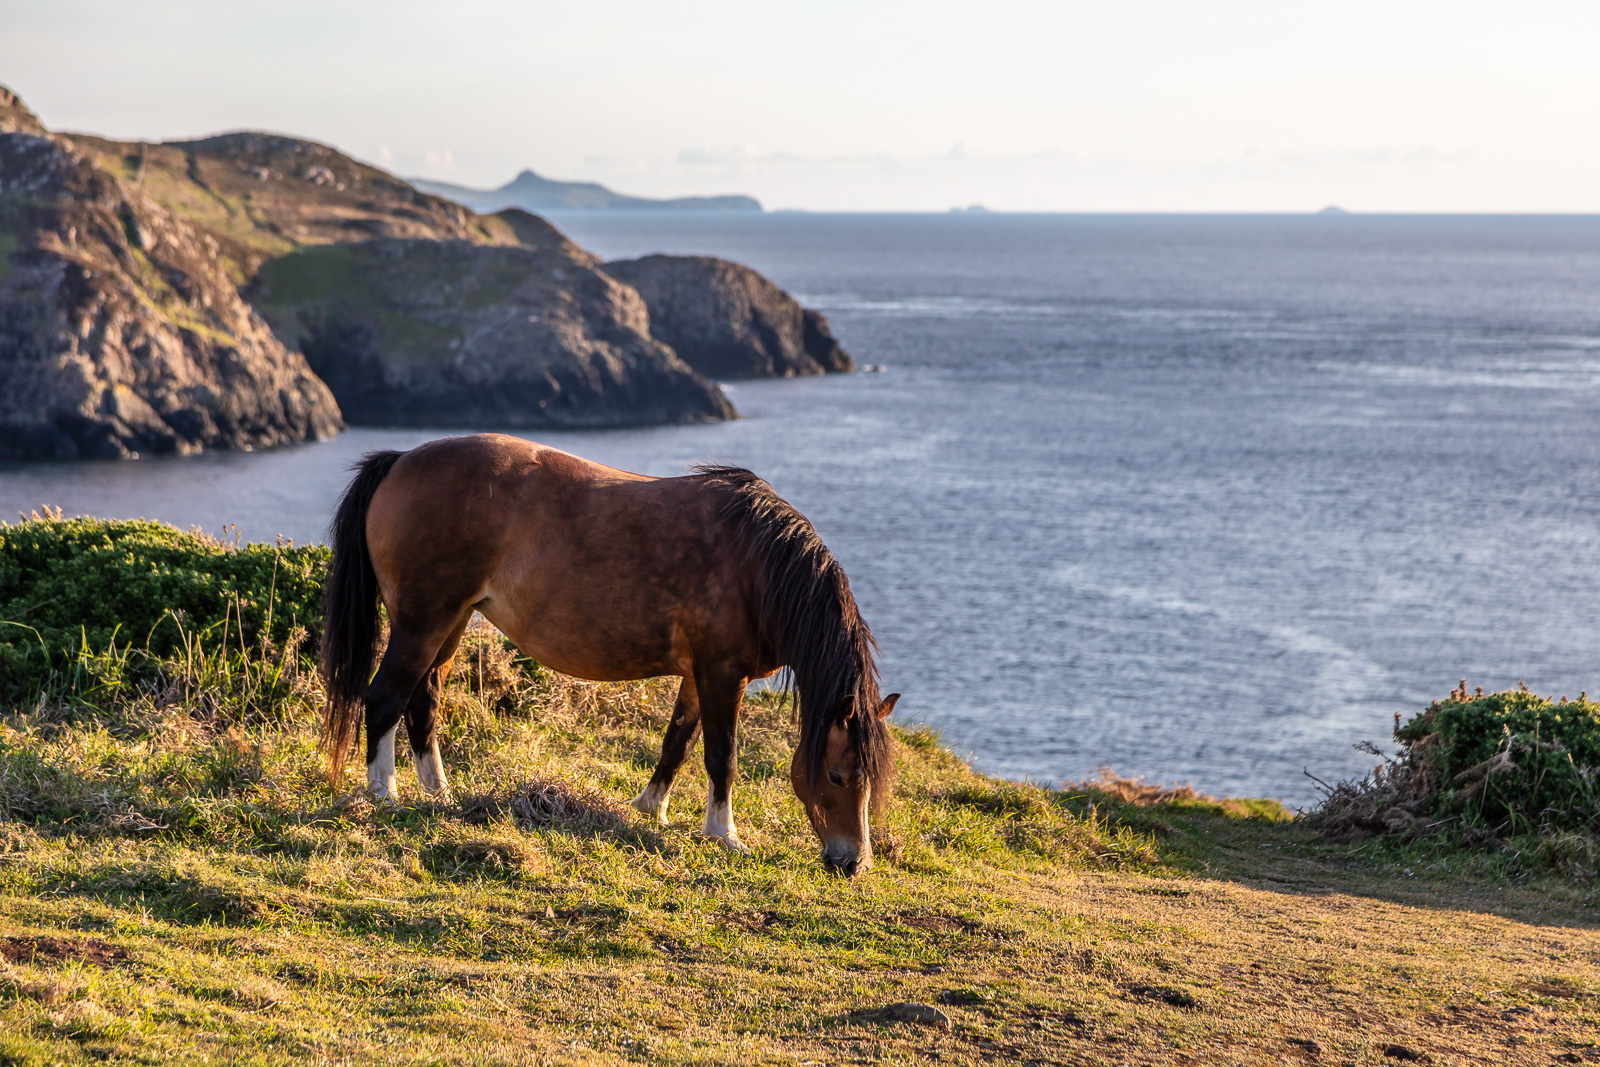 Welsh Mountain Ponies at Strumble Head, Pembrokeshire, Wales, UK